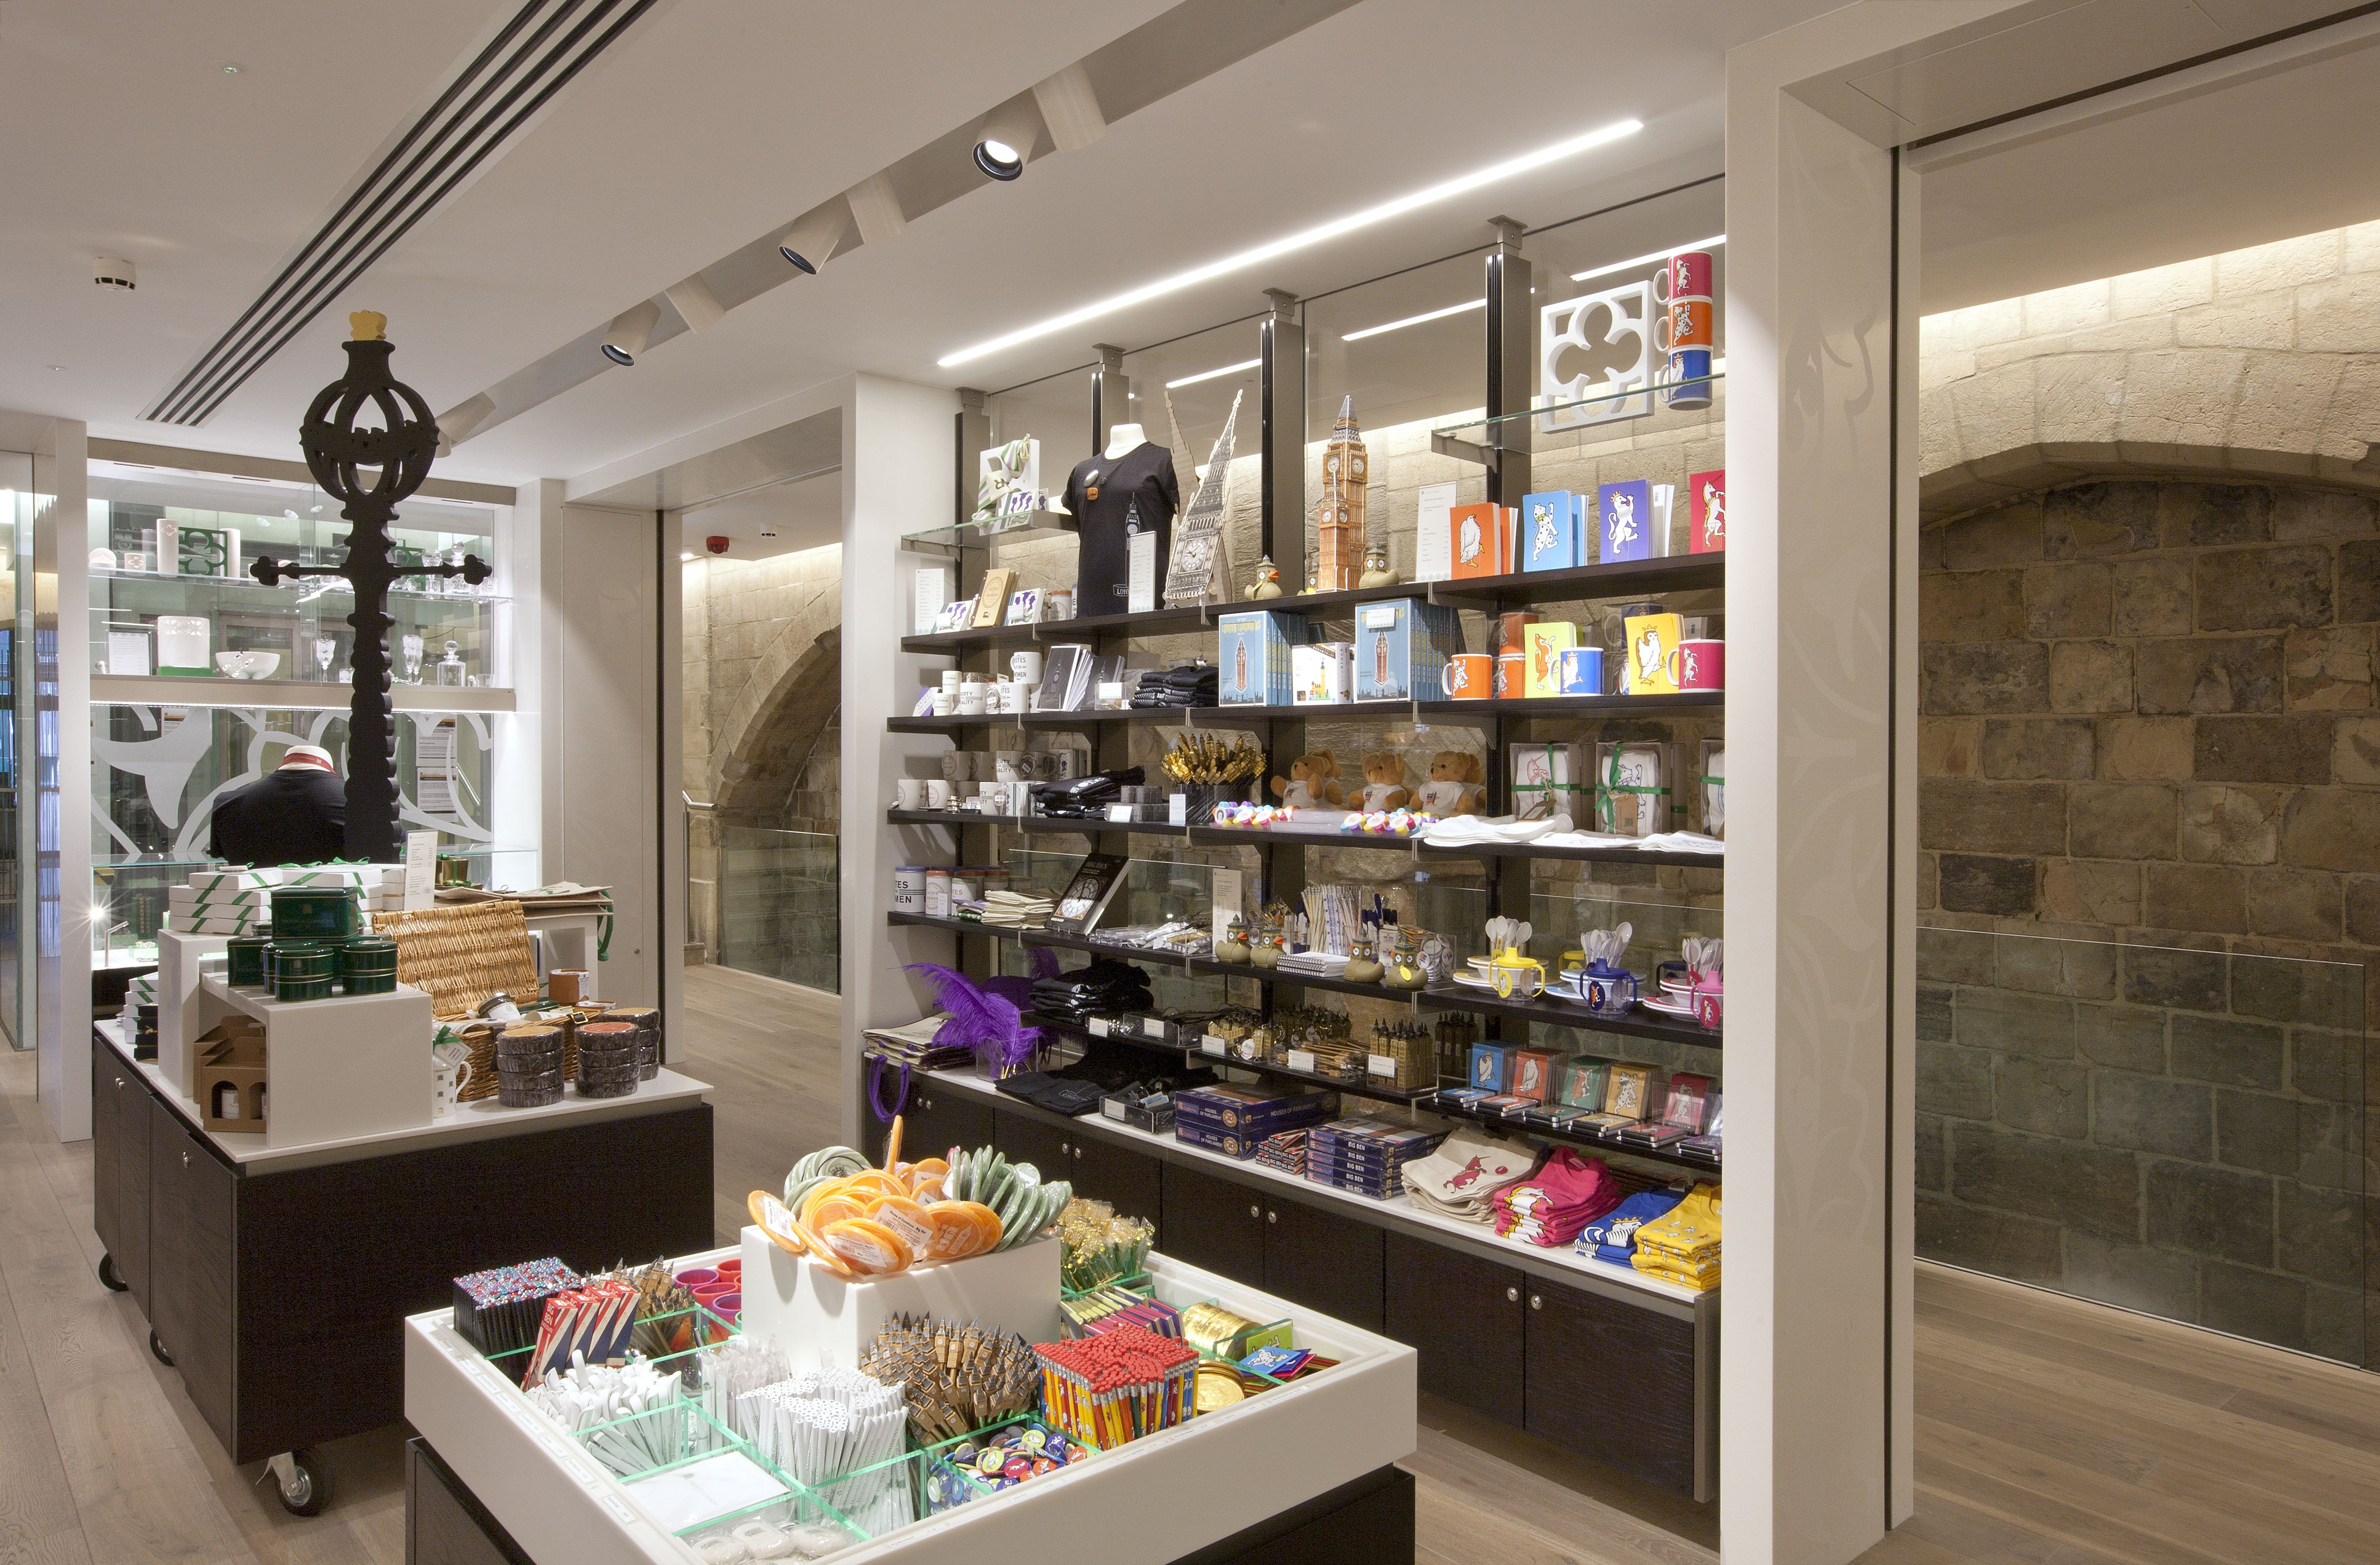 Houses of parliament jubilee gift shop designed by